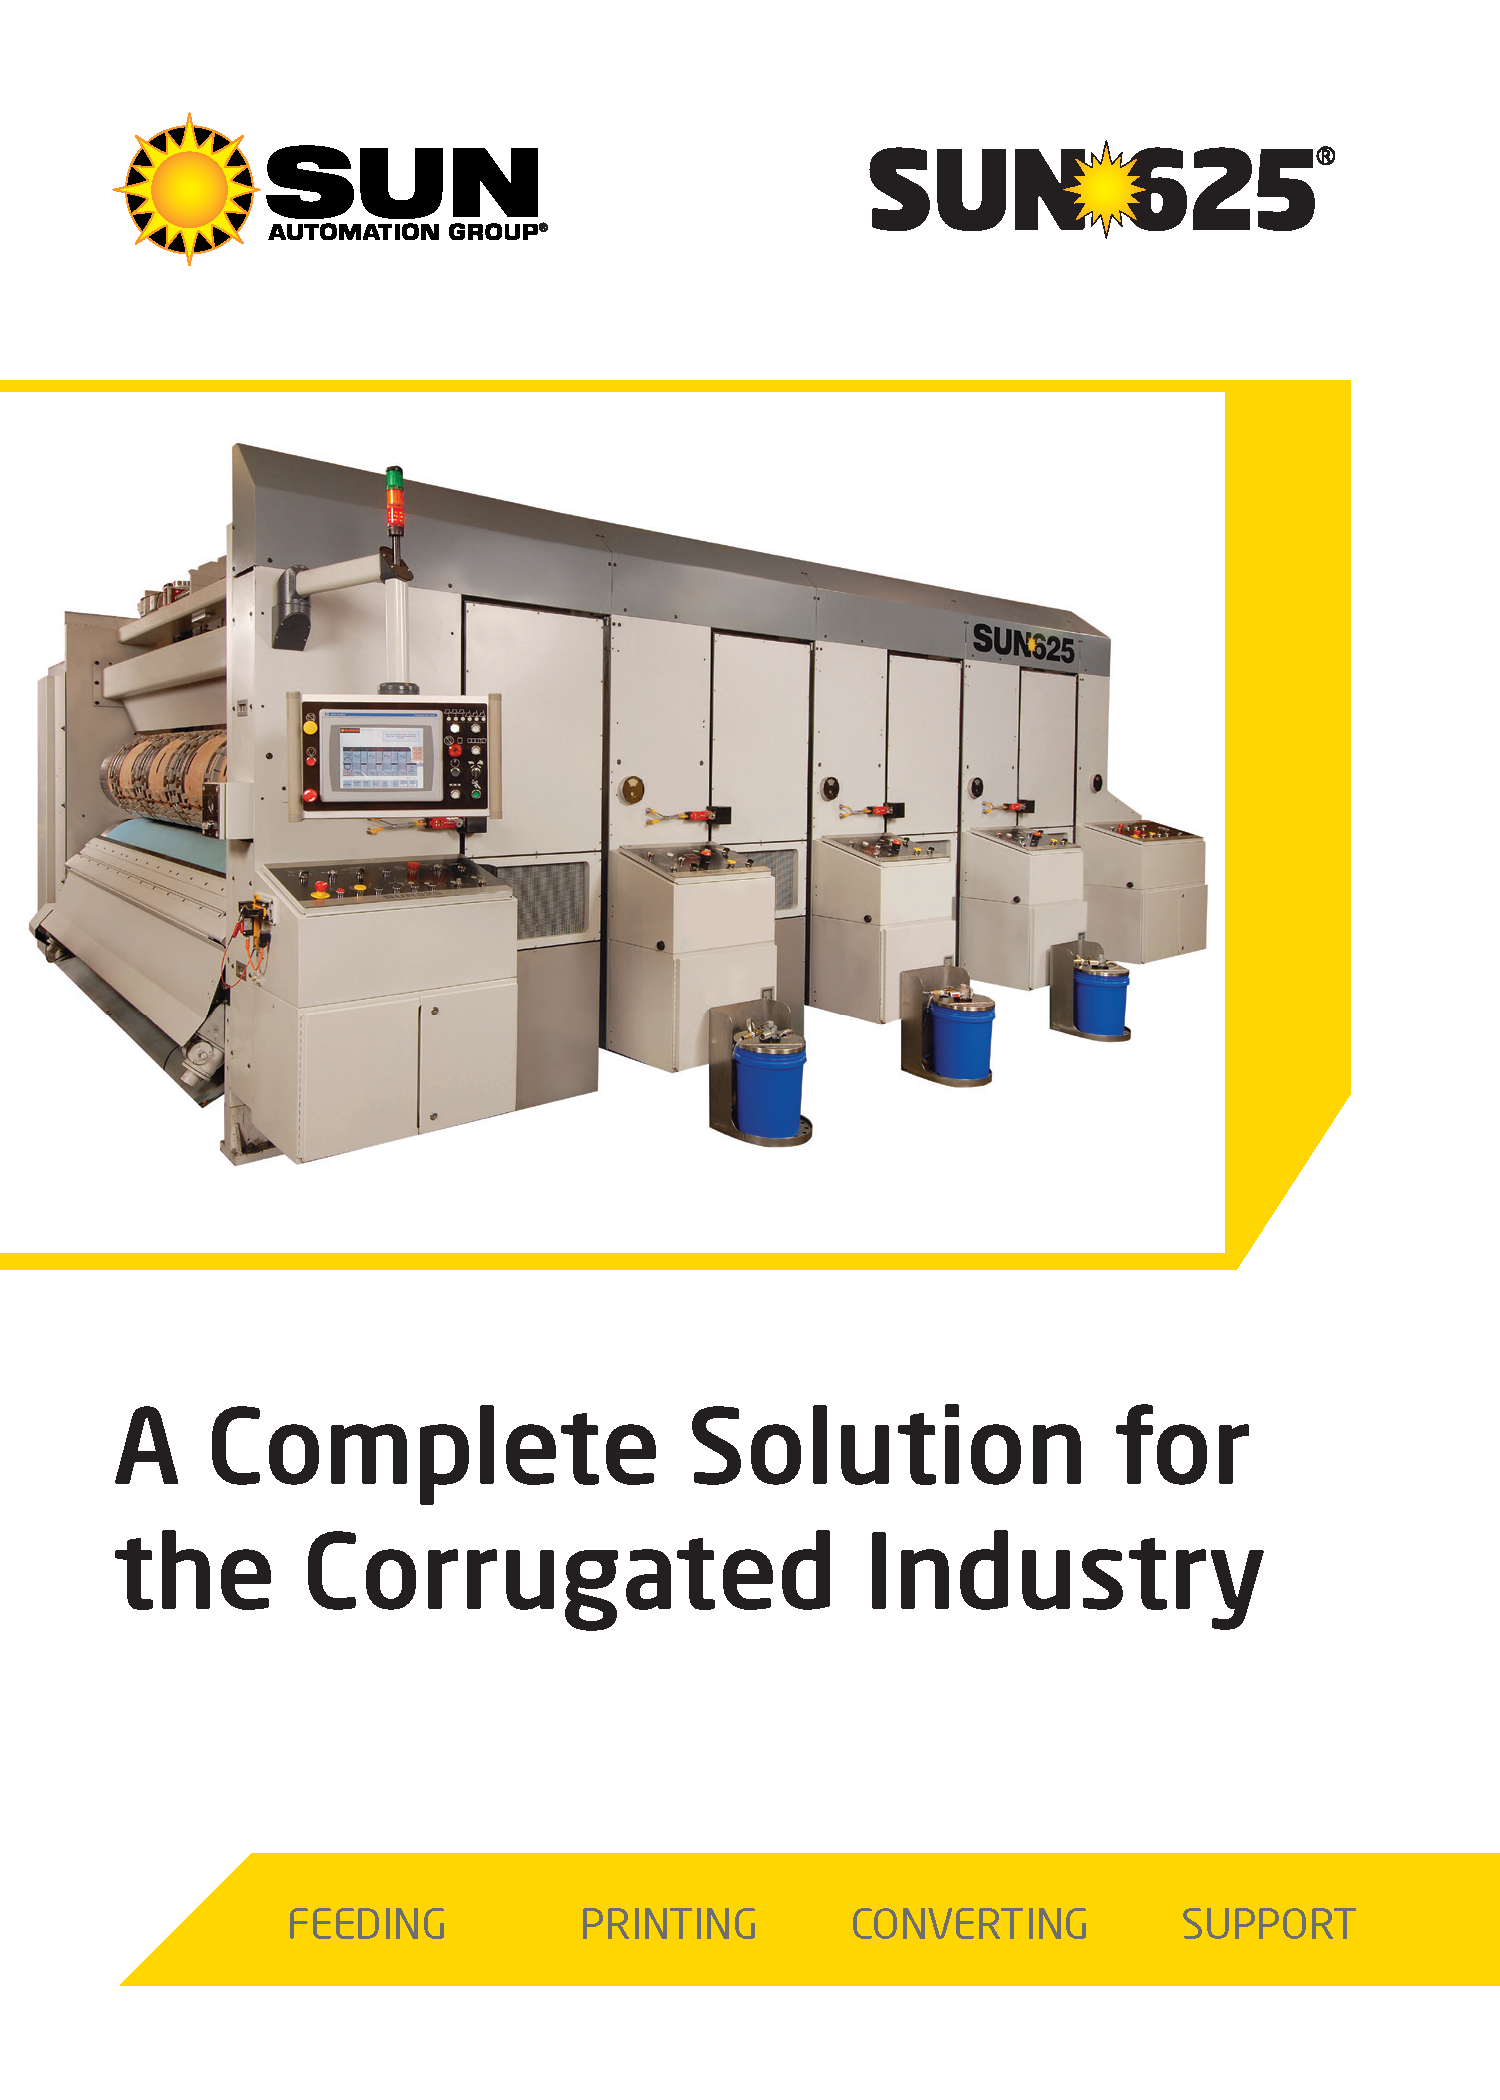 Learn more about the SUN625 RDC in the Sun Automation Group's brochure.